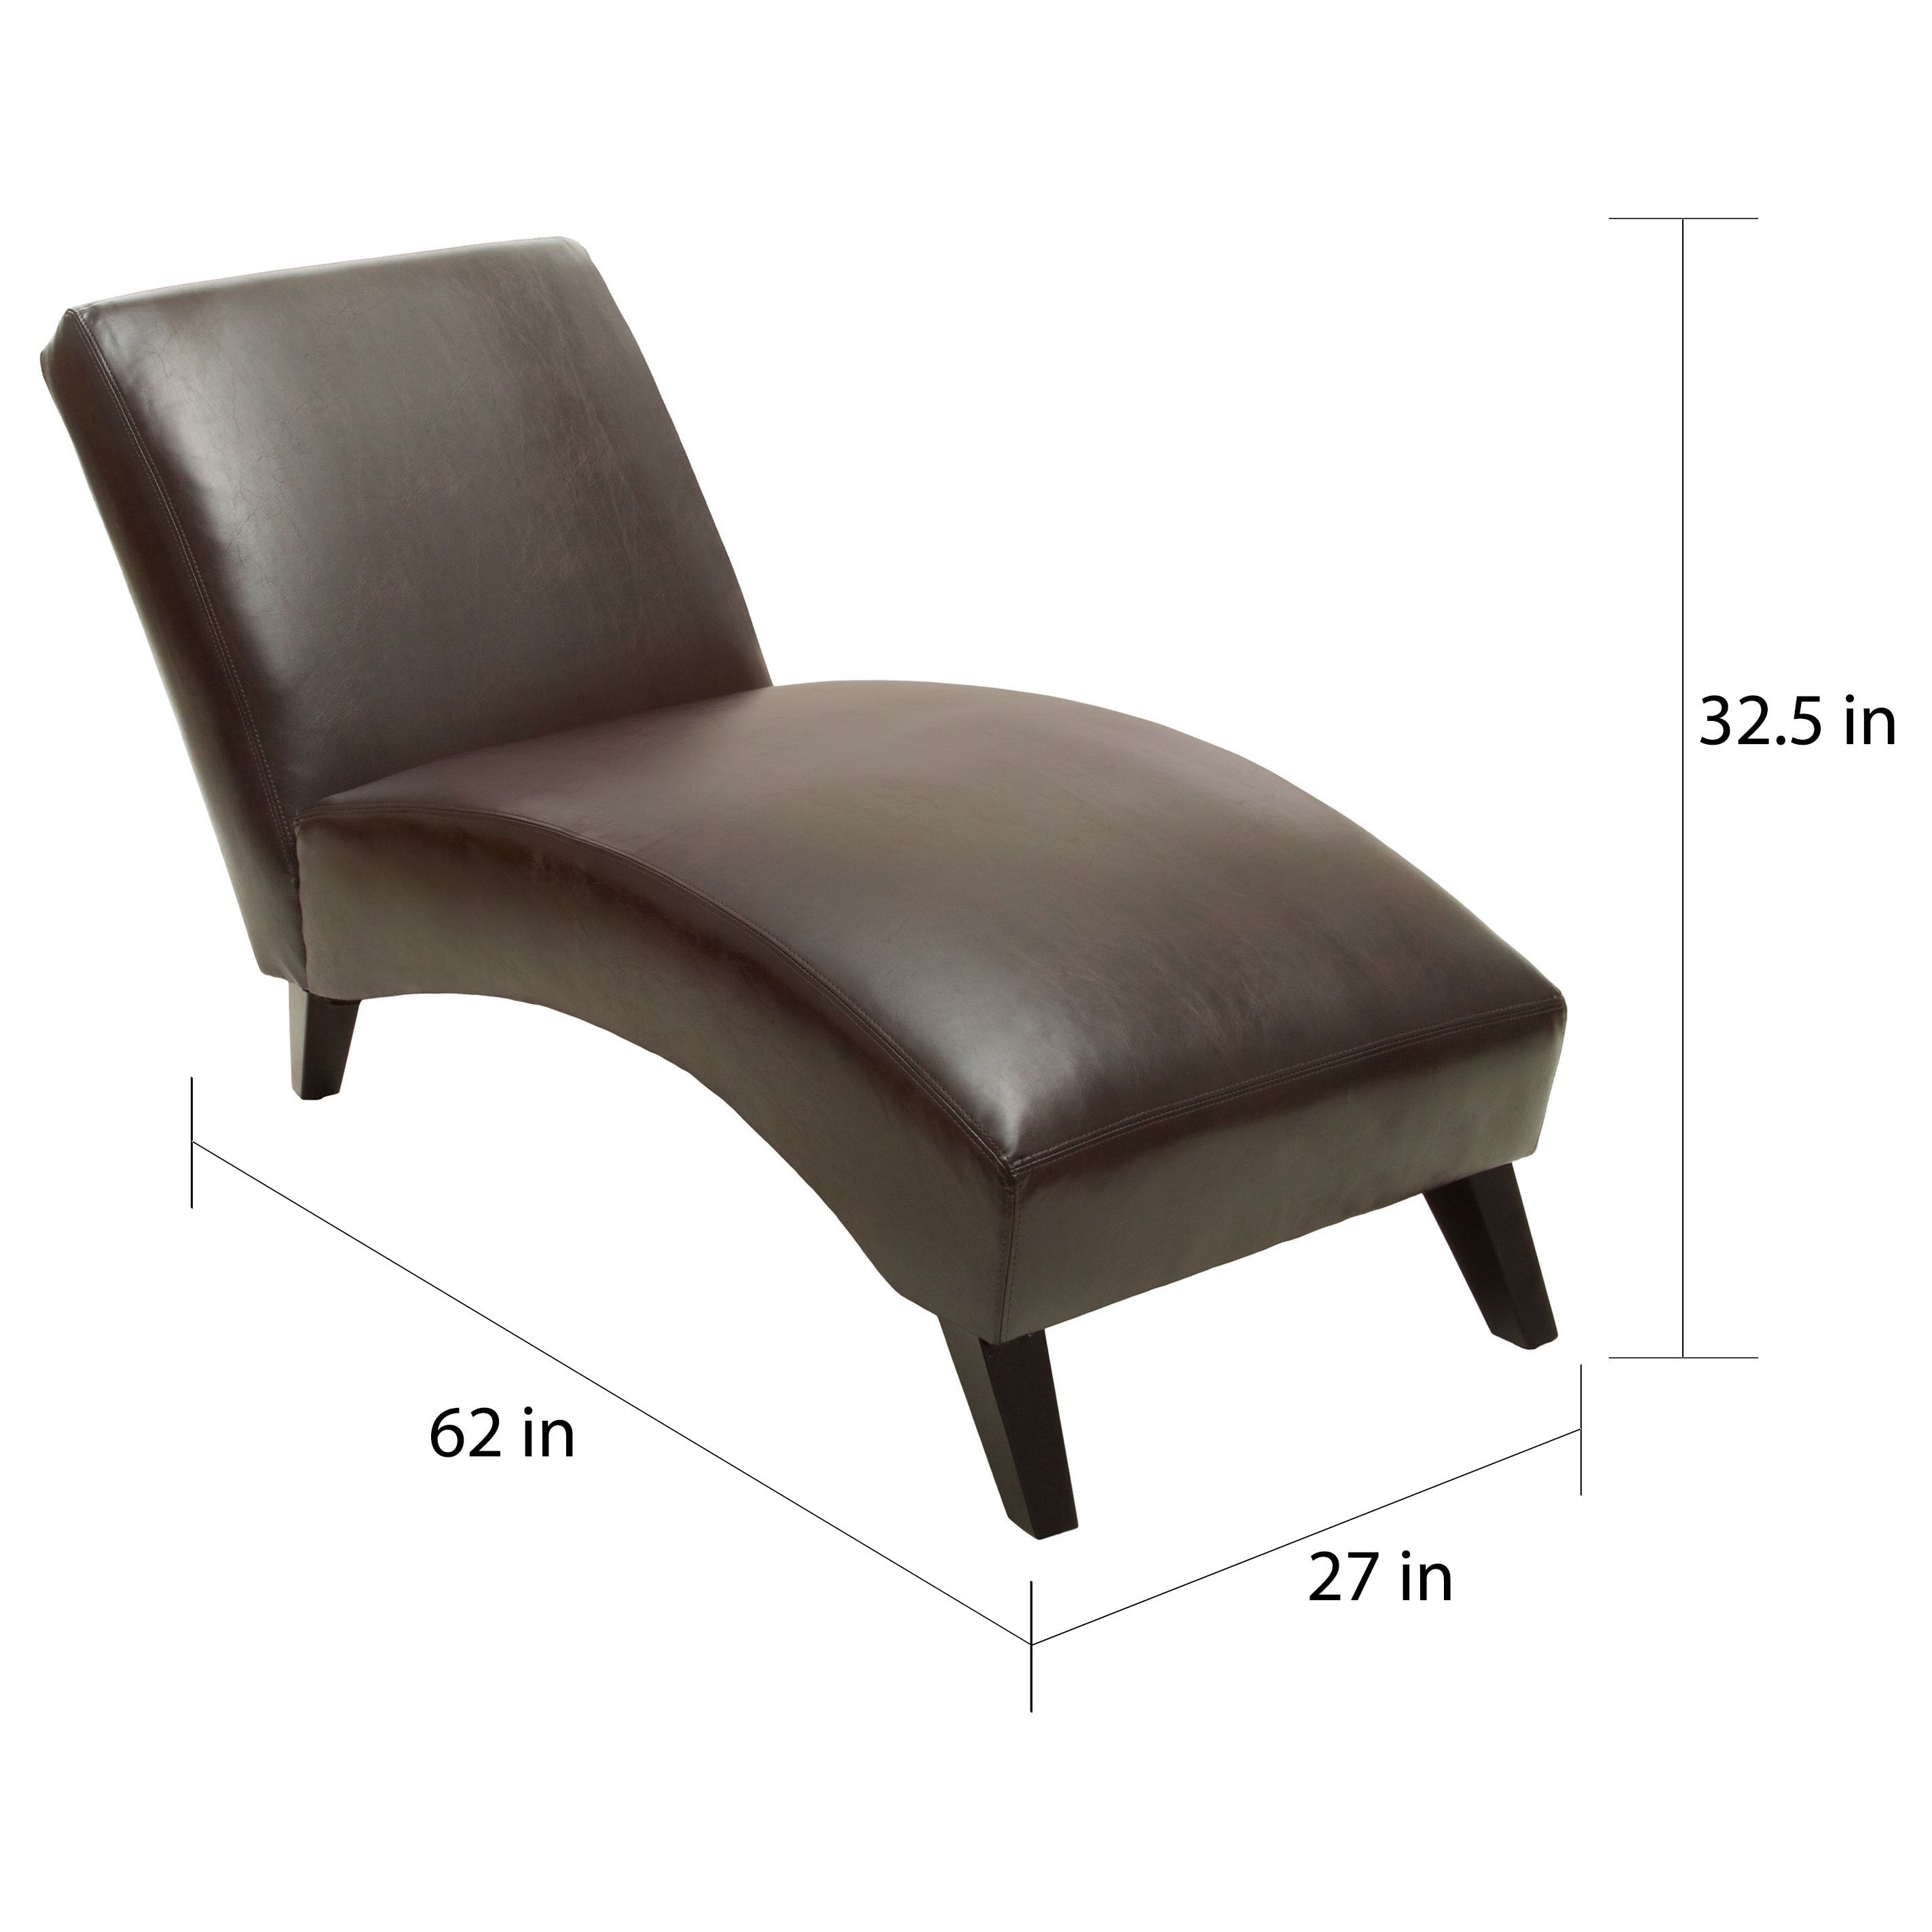 dark brown lounge seat products mjuk kimstad sectional timsfors us en chaise ikea catalog